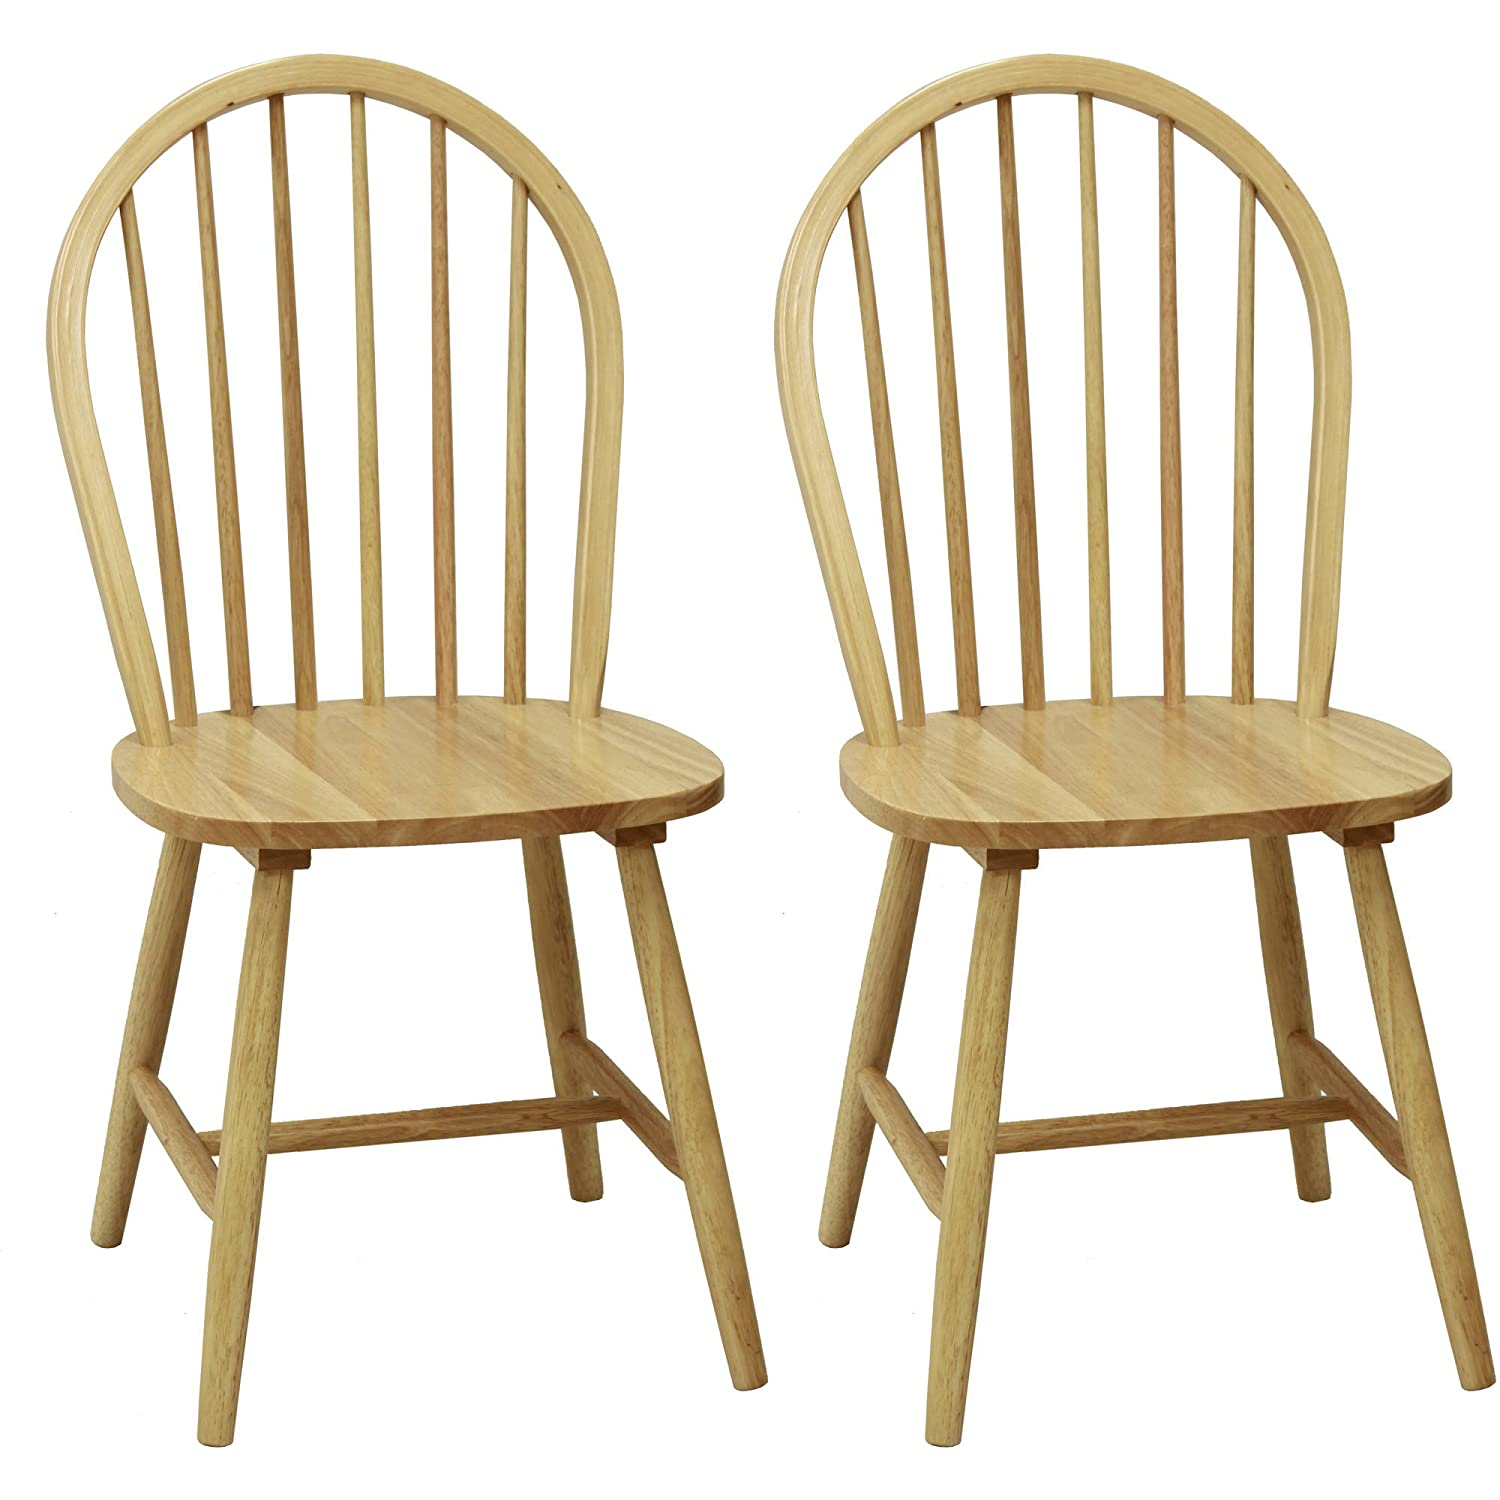 Amazoncom Windsor Chair in Natural Set of Two Chairs